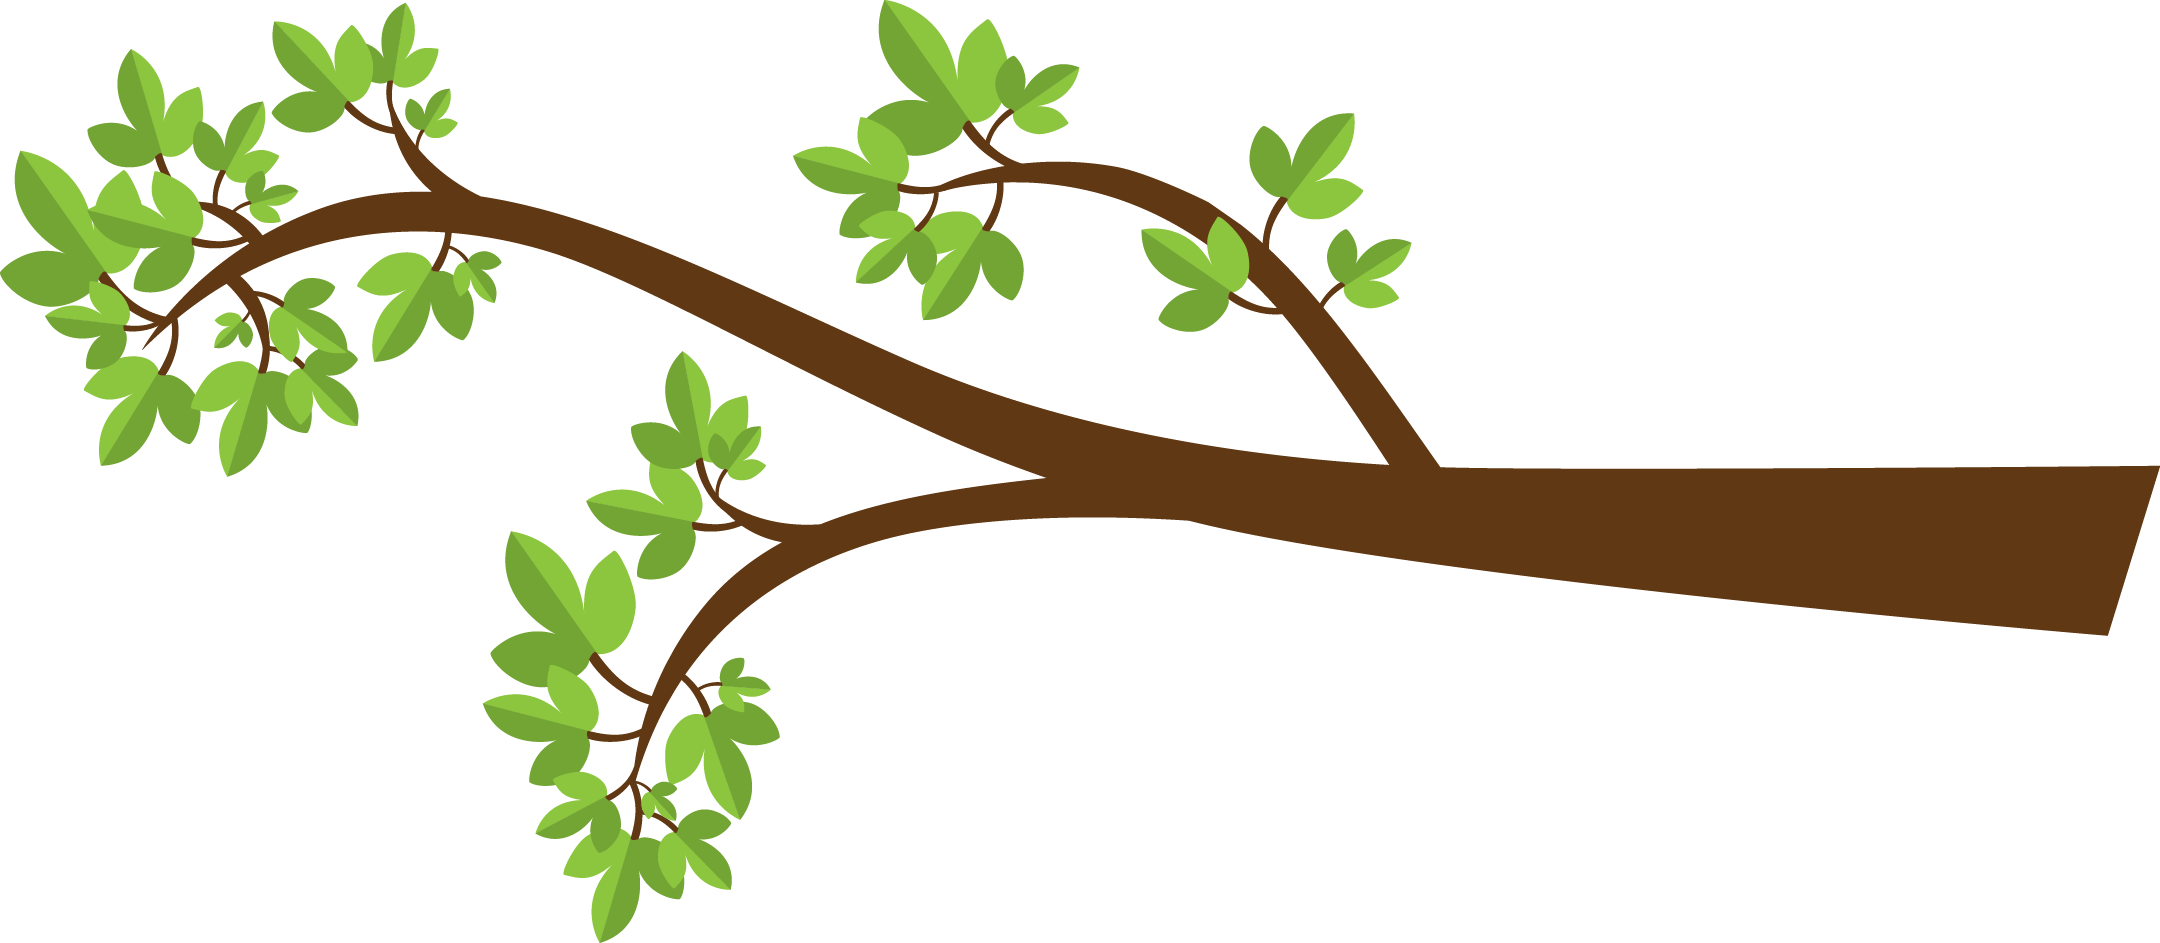 Stick tree clipart library 28+ Collection of Tree Branches Clipart | High quality, free ... library